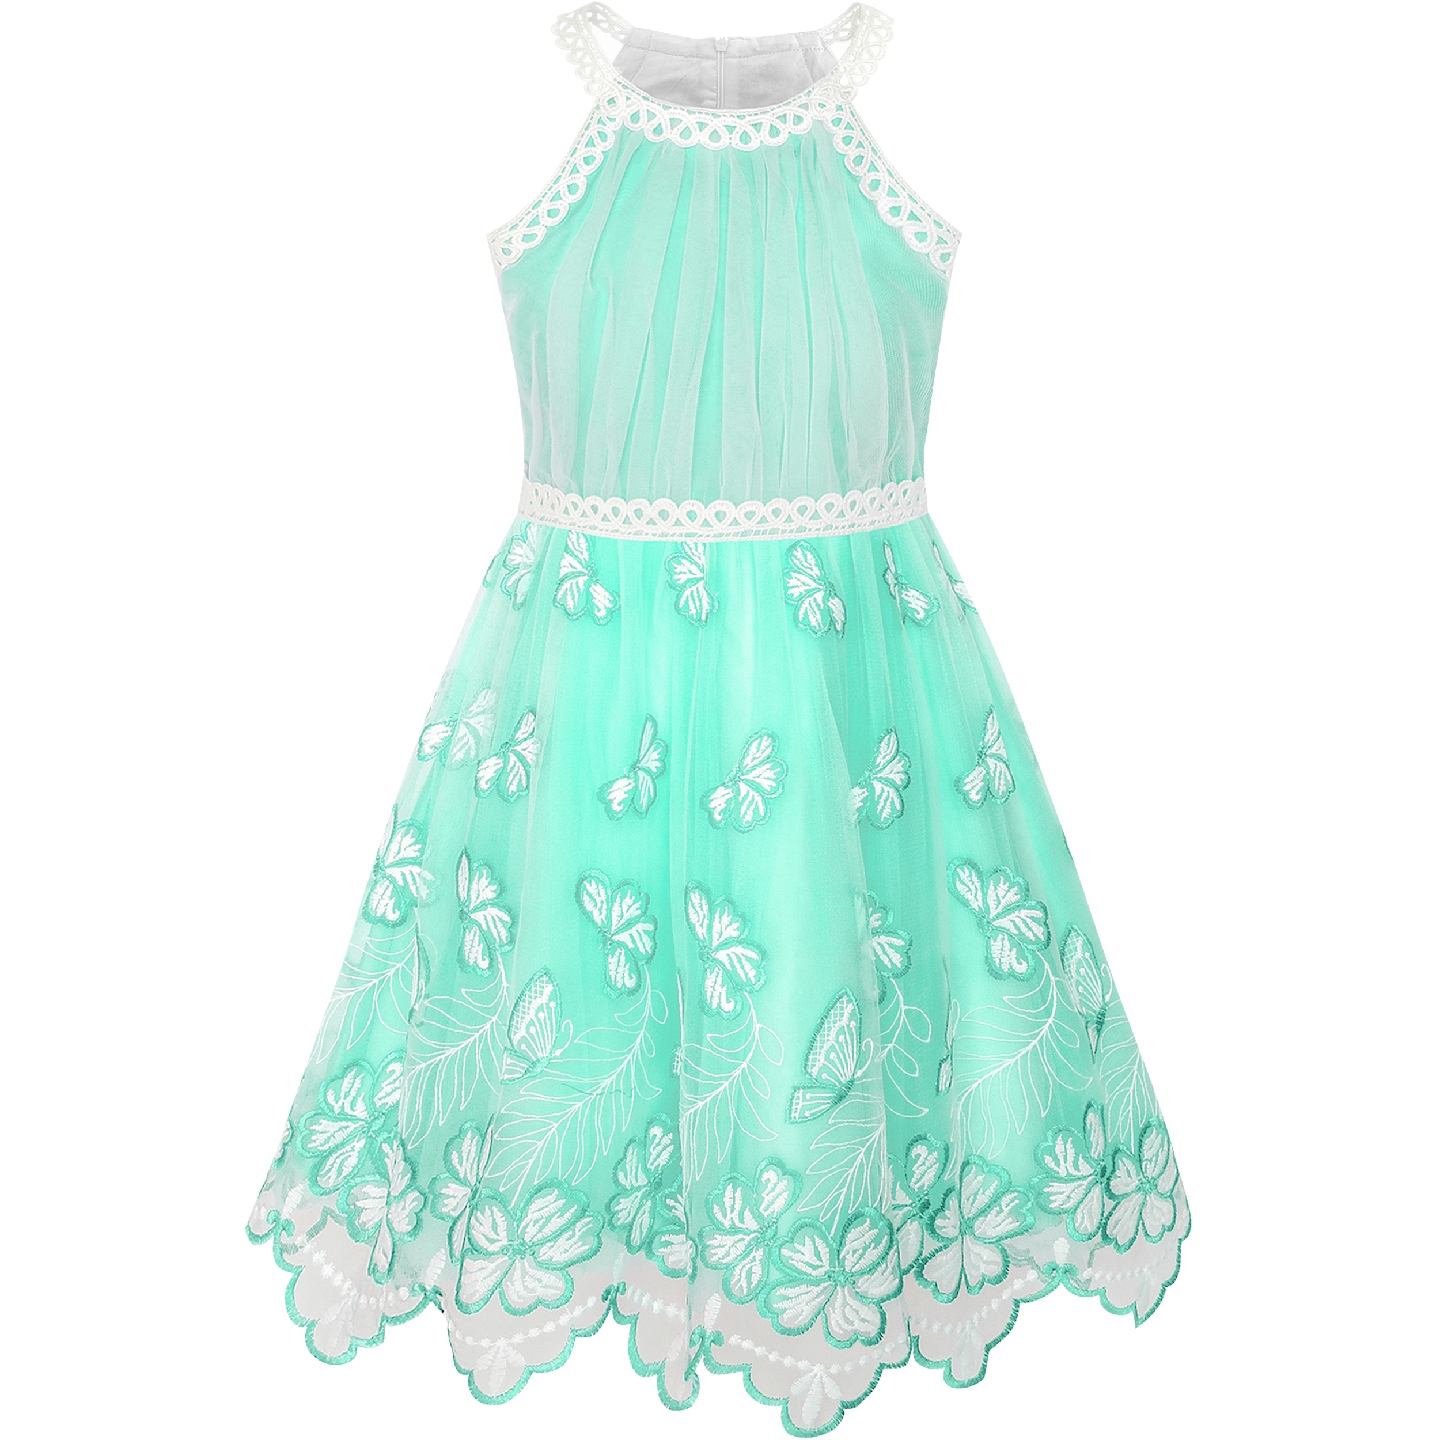 Girls Dress Turquoise Butterfly Embroidered Halter Dress Party 2019 Summer Princess Wedding Dresses Children Clothes Pageant